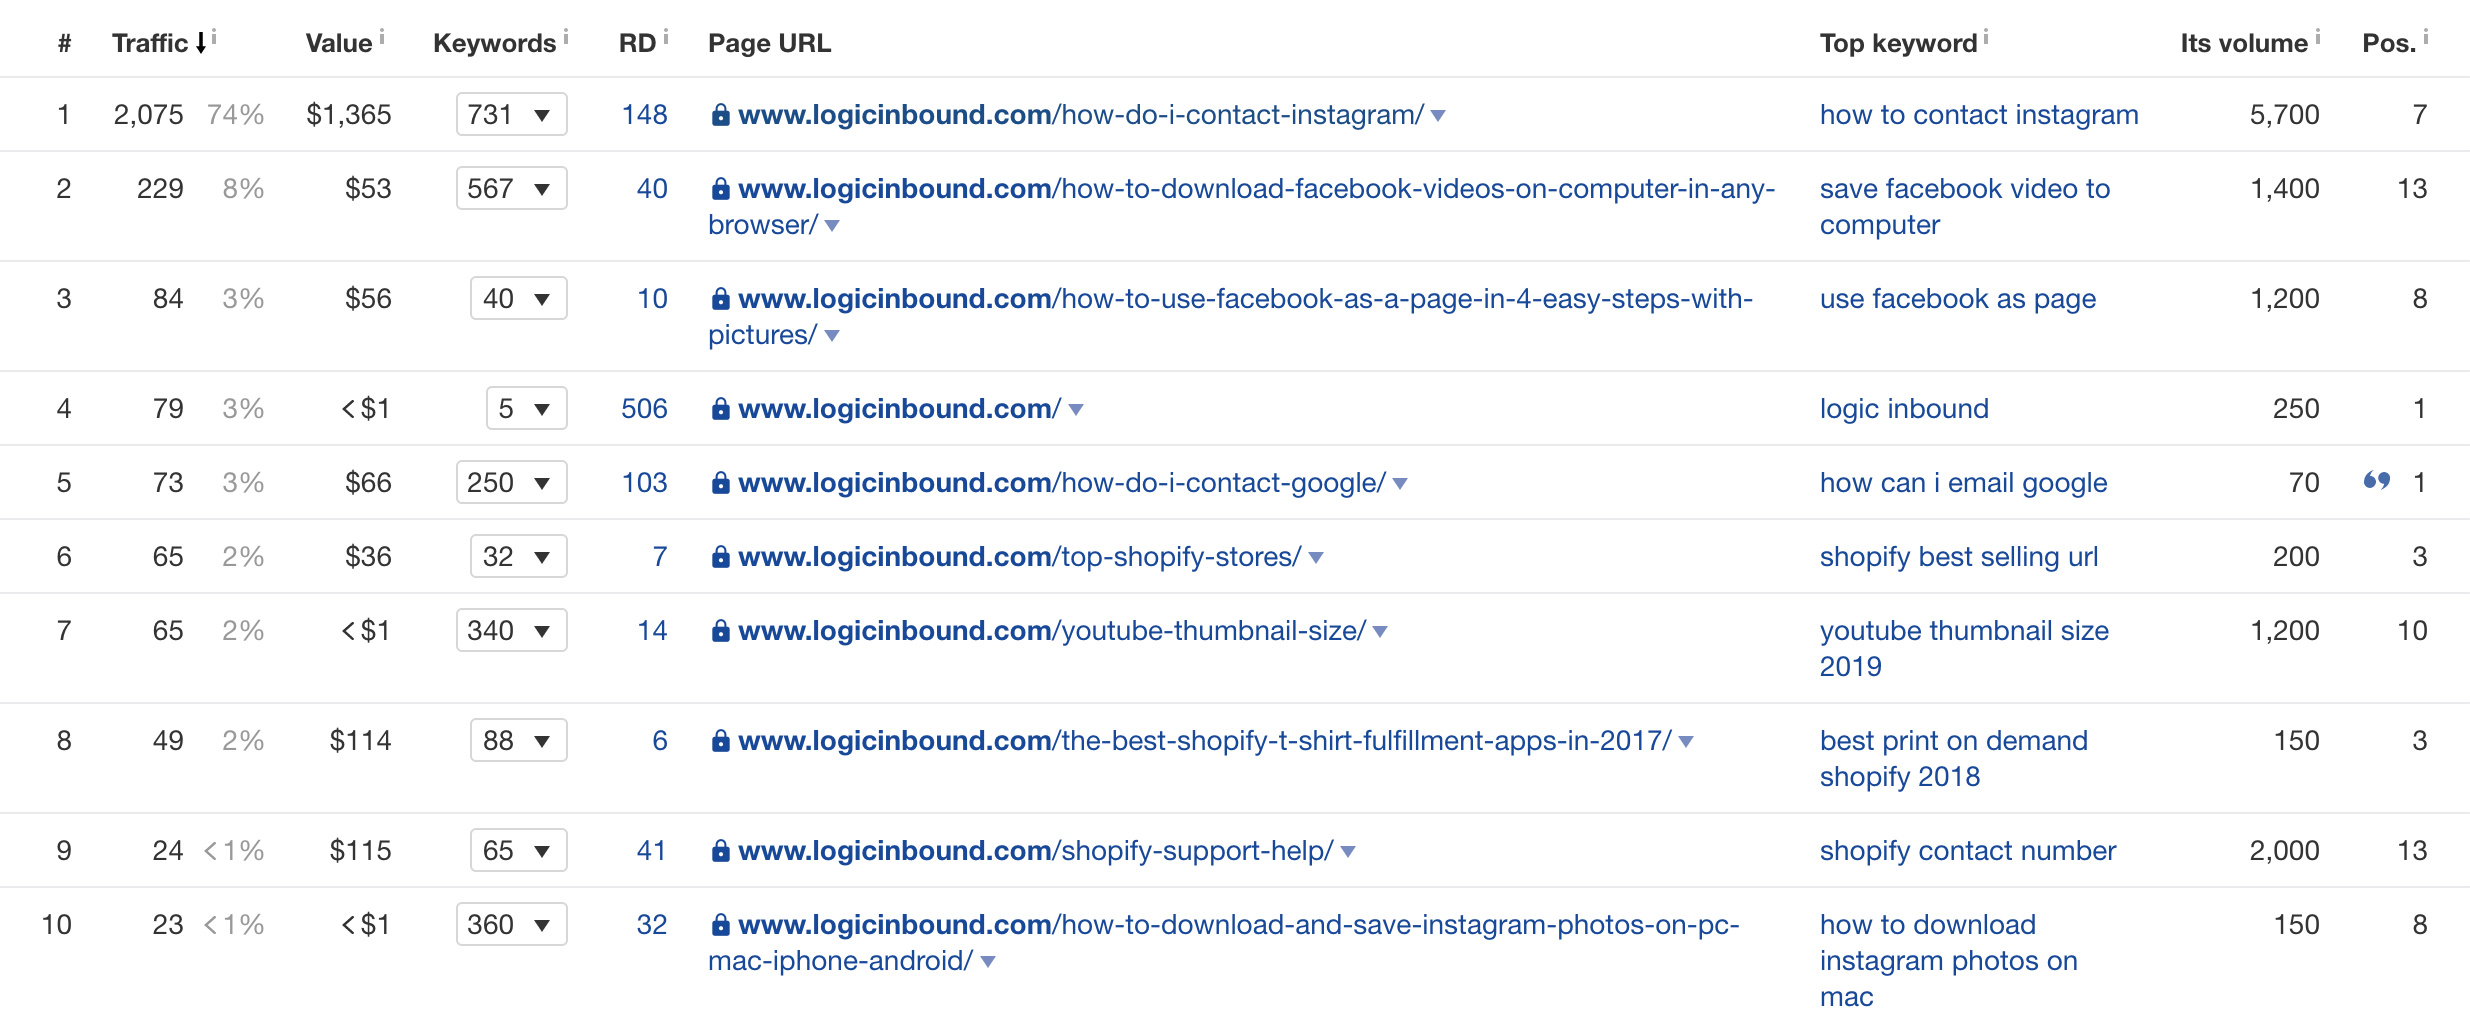 LogicInbound's traffic pages